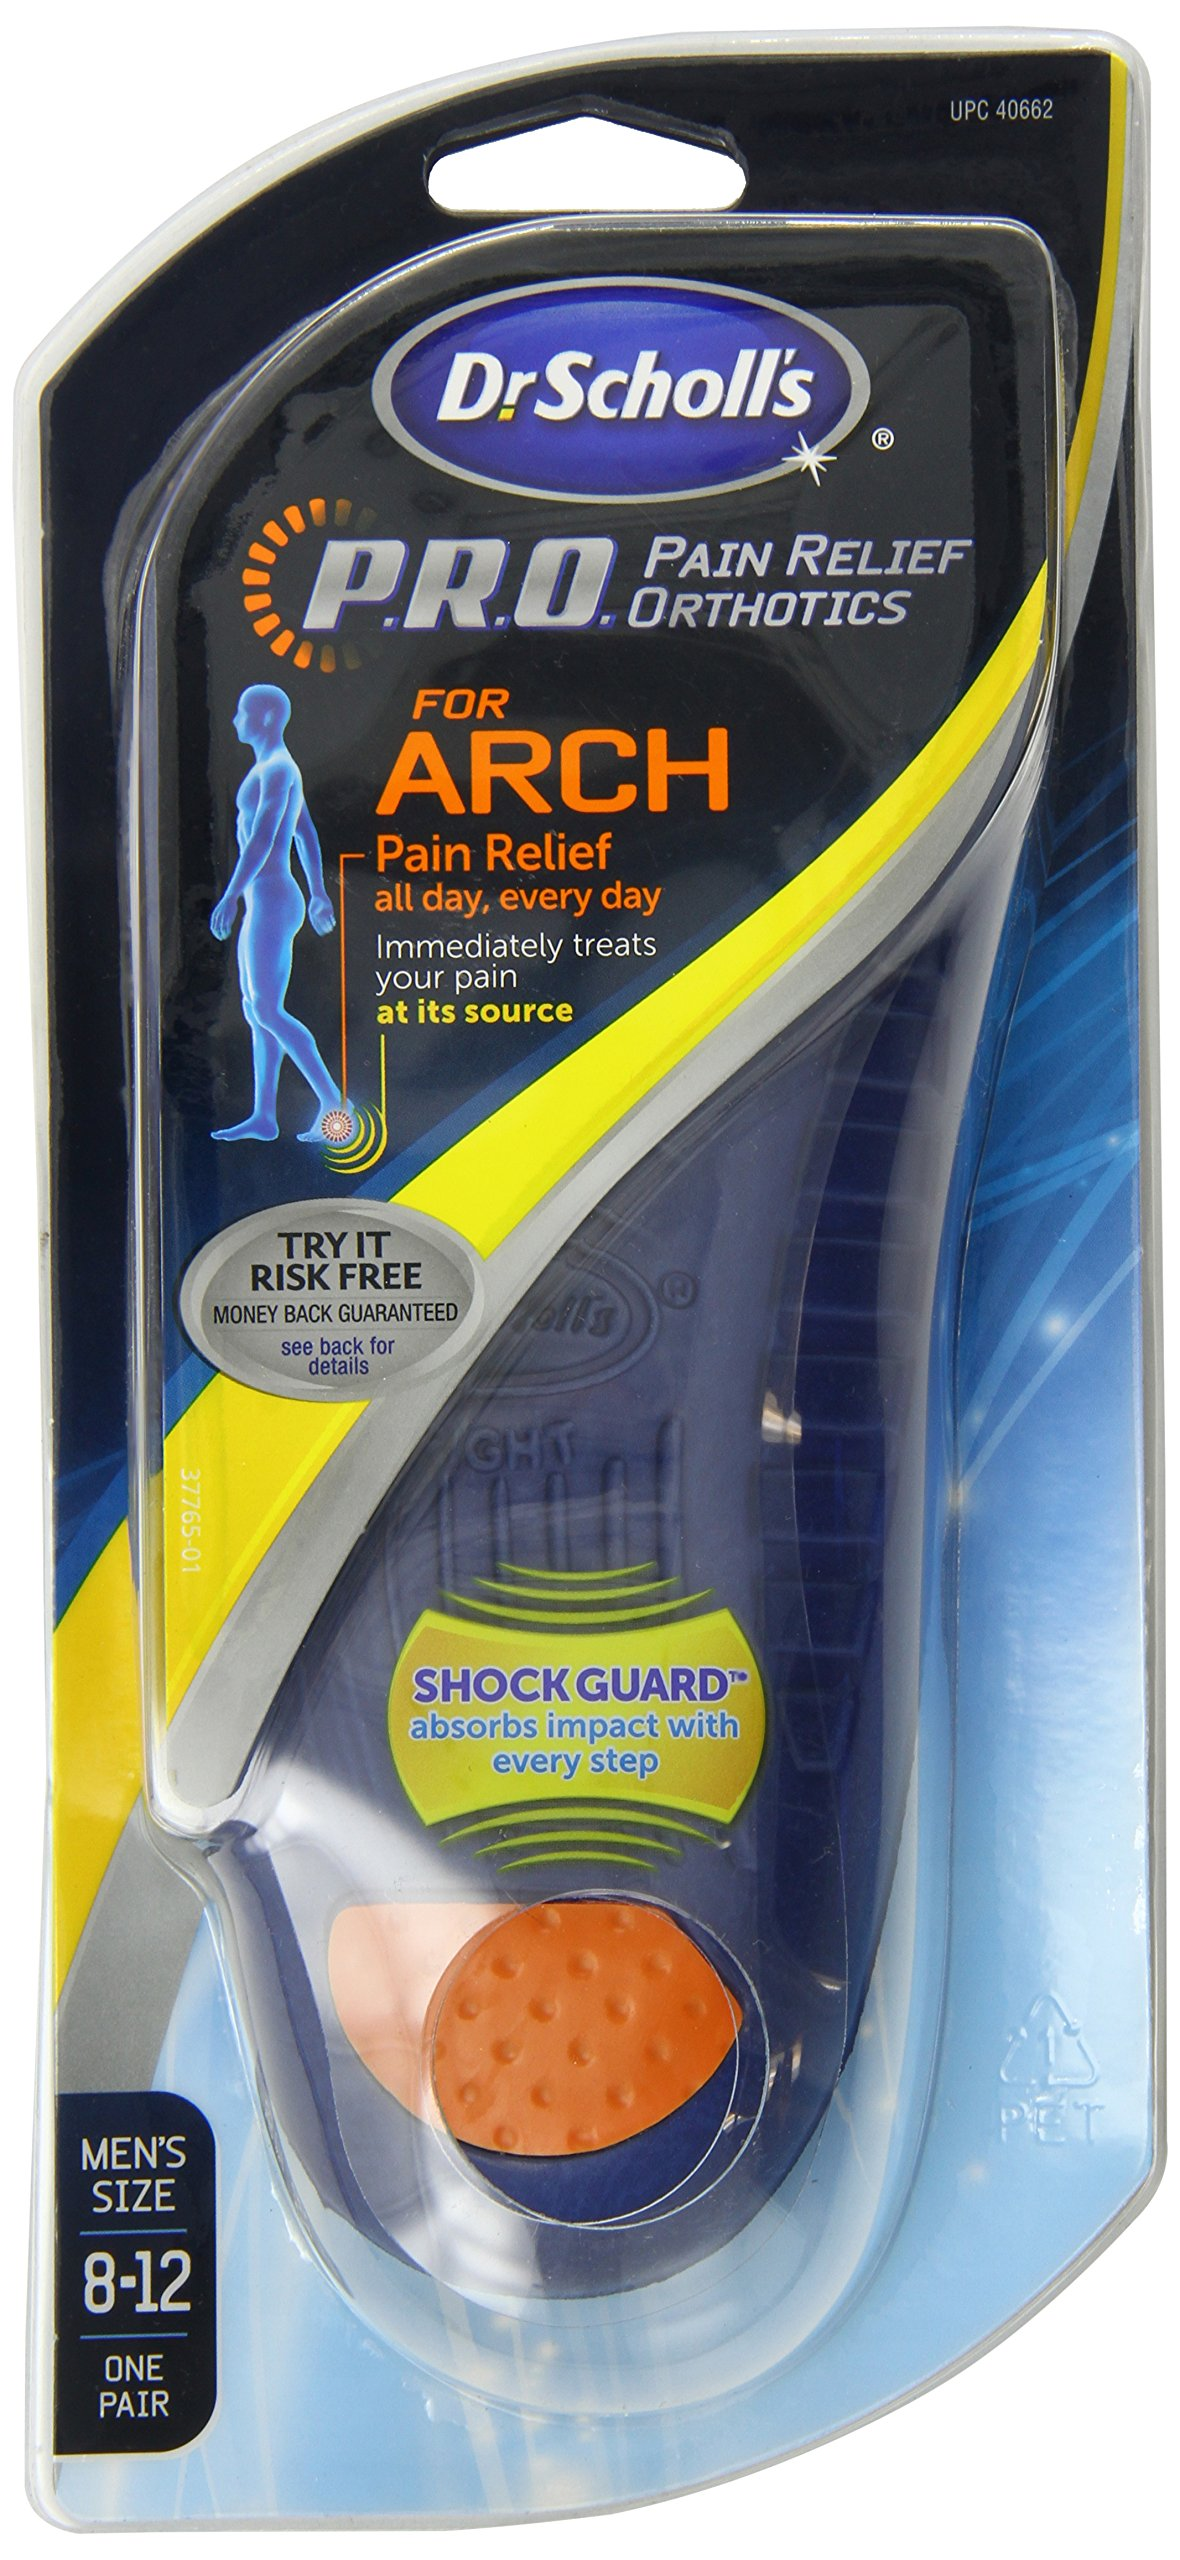 Dr. Scholl's Arch Pain Relief Orthotic Mens, Sizes 8 - 12